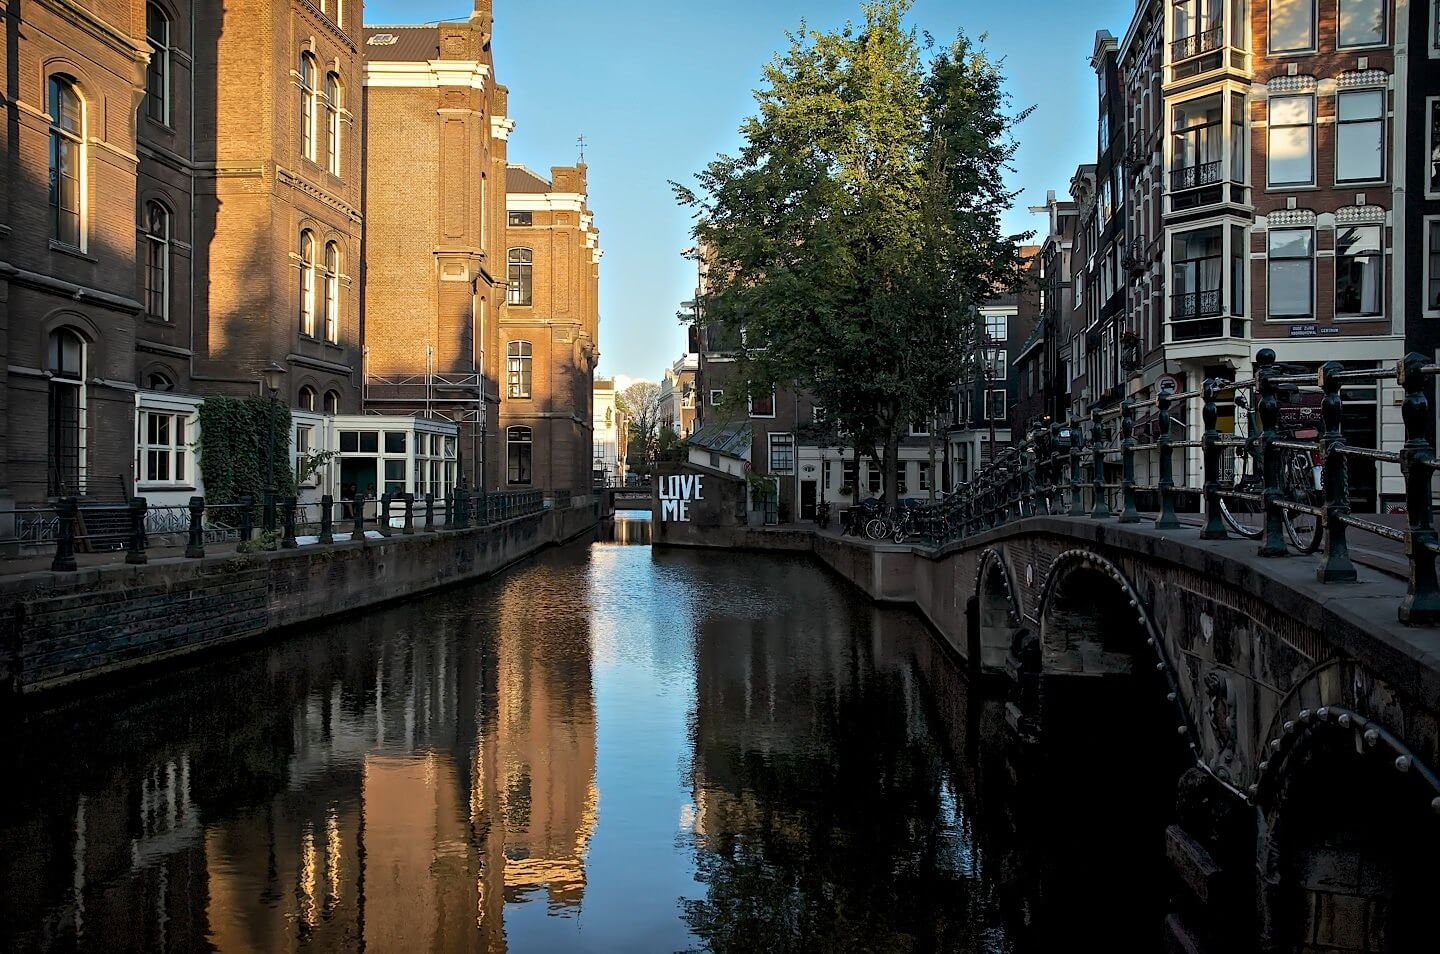 Sun rises over a canal in Amsterdam